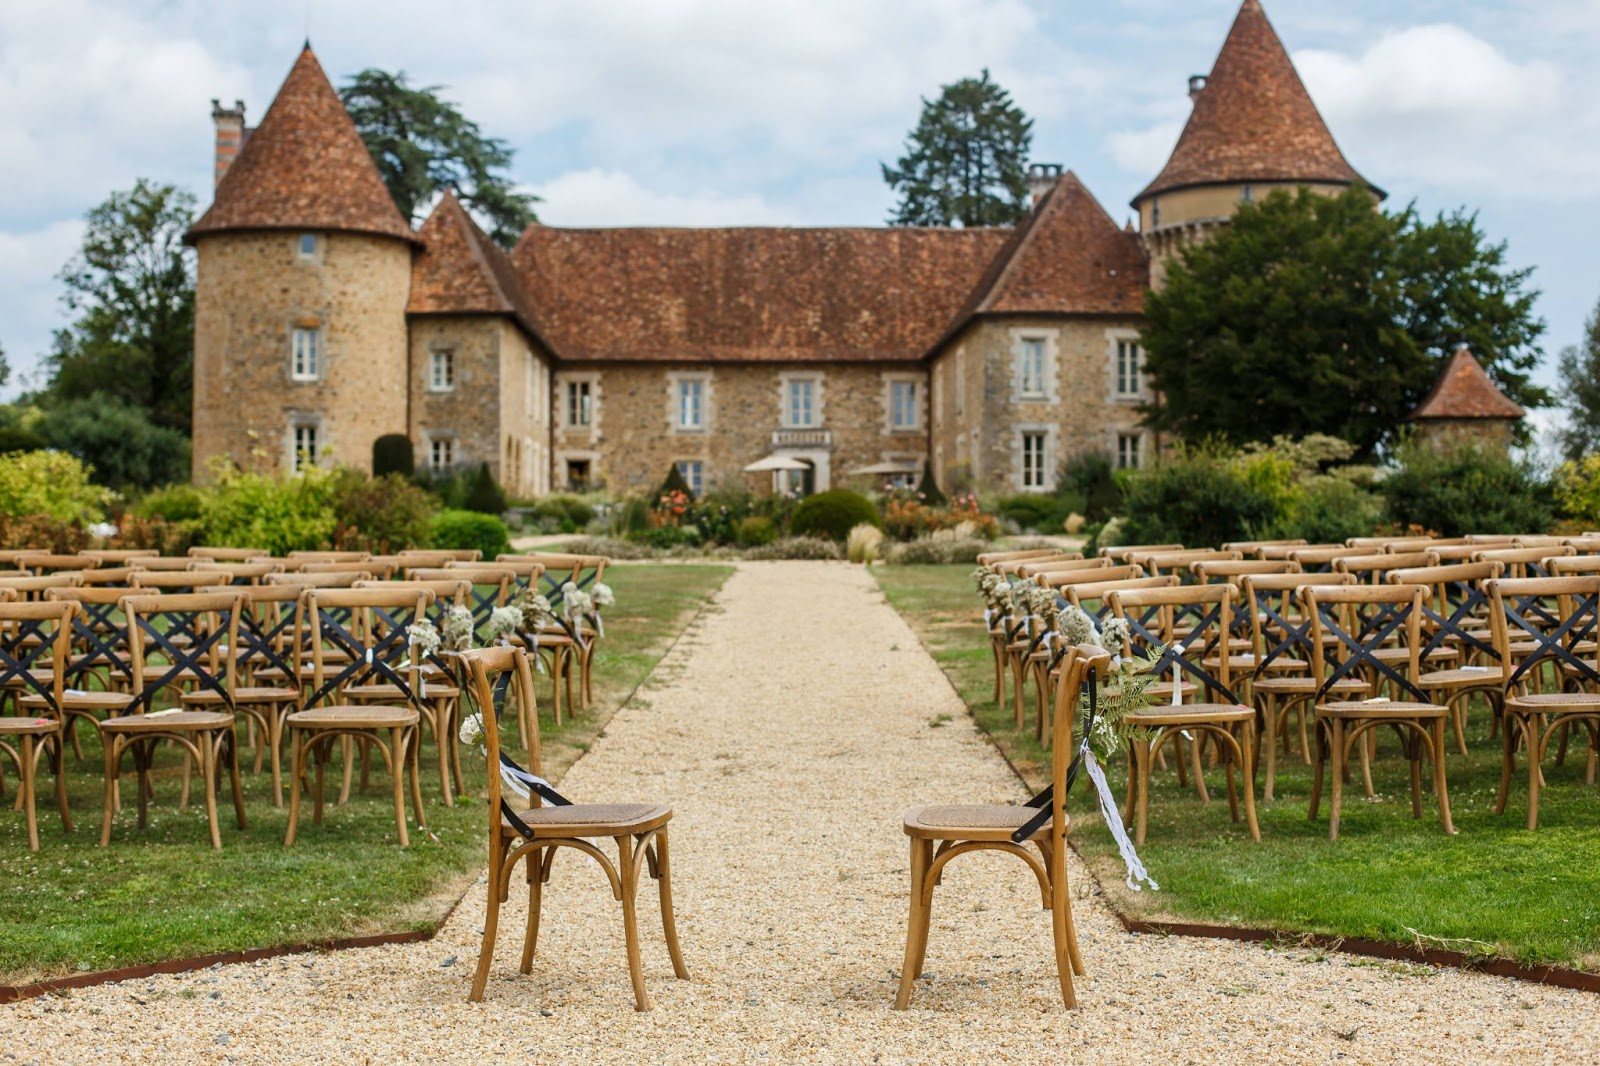 A historic wedding venue with wooden seats on each side of the isle.